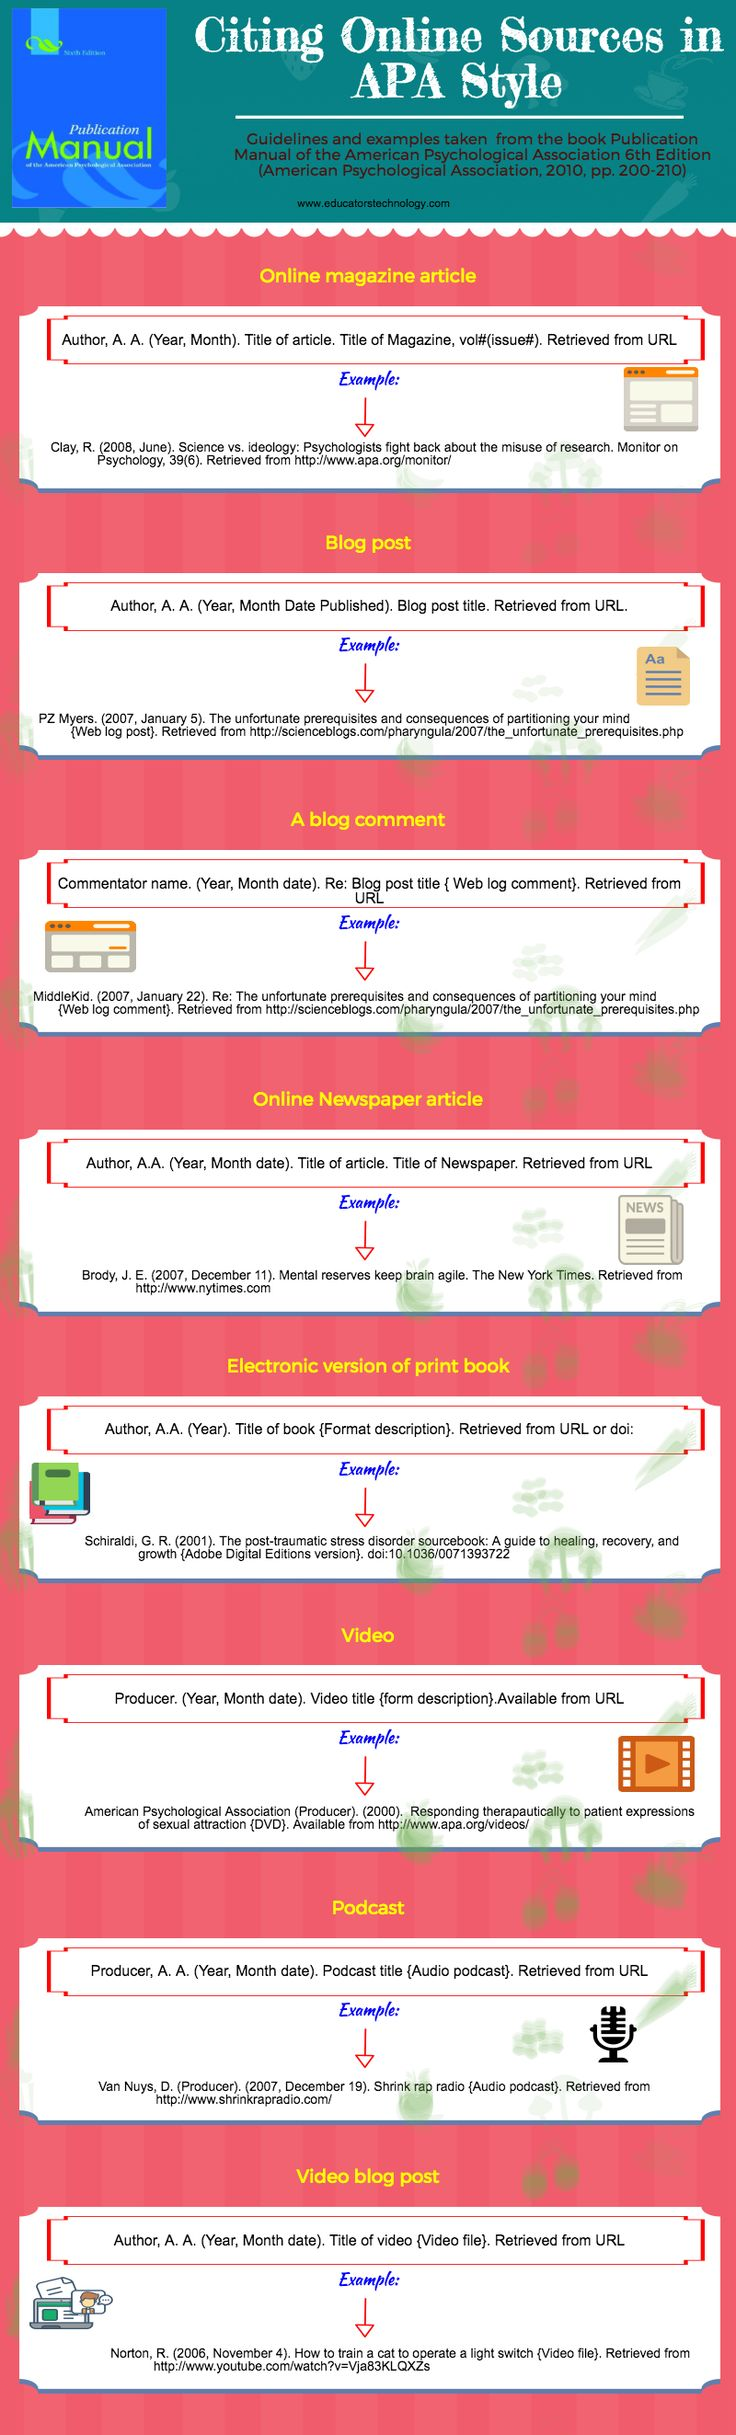 best ideas about apa style apa style paper an interesting visual on how to cite online sources in apa style